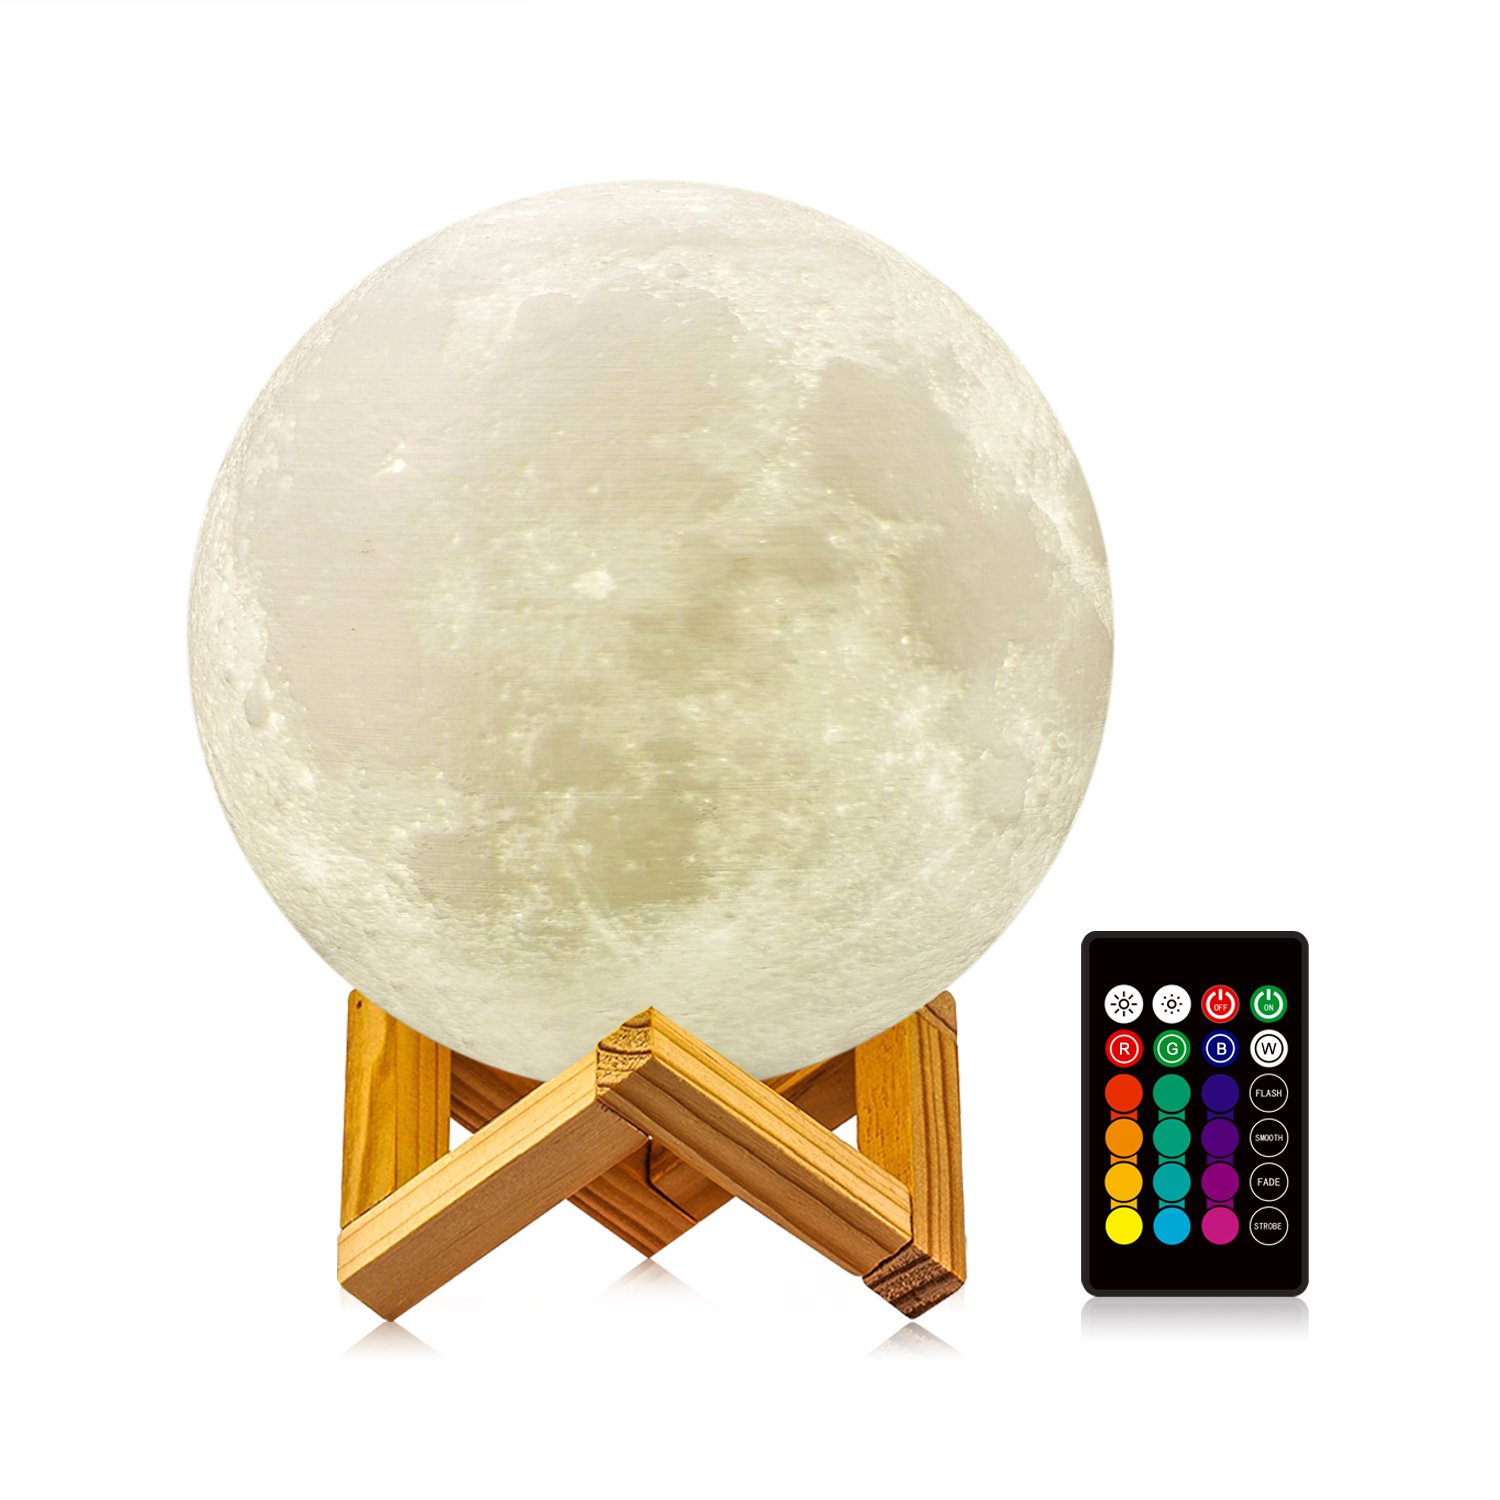 LOGROTATE Moon Lamp with Stand(Diameter 4.7 inch), 16 Colors 3D Print Moon Light with Remote & Touch Control and USB Recharge, Moon Light Lamps for Baby Kids Lover Birthday Fathers Day Gifts